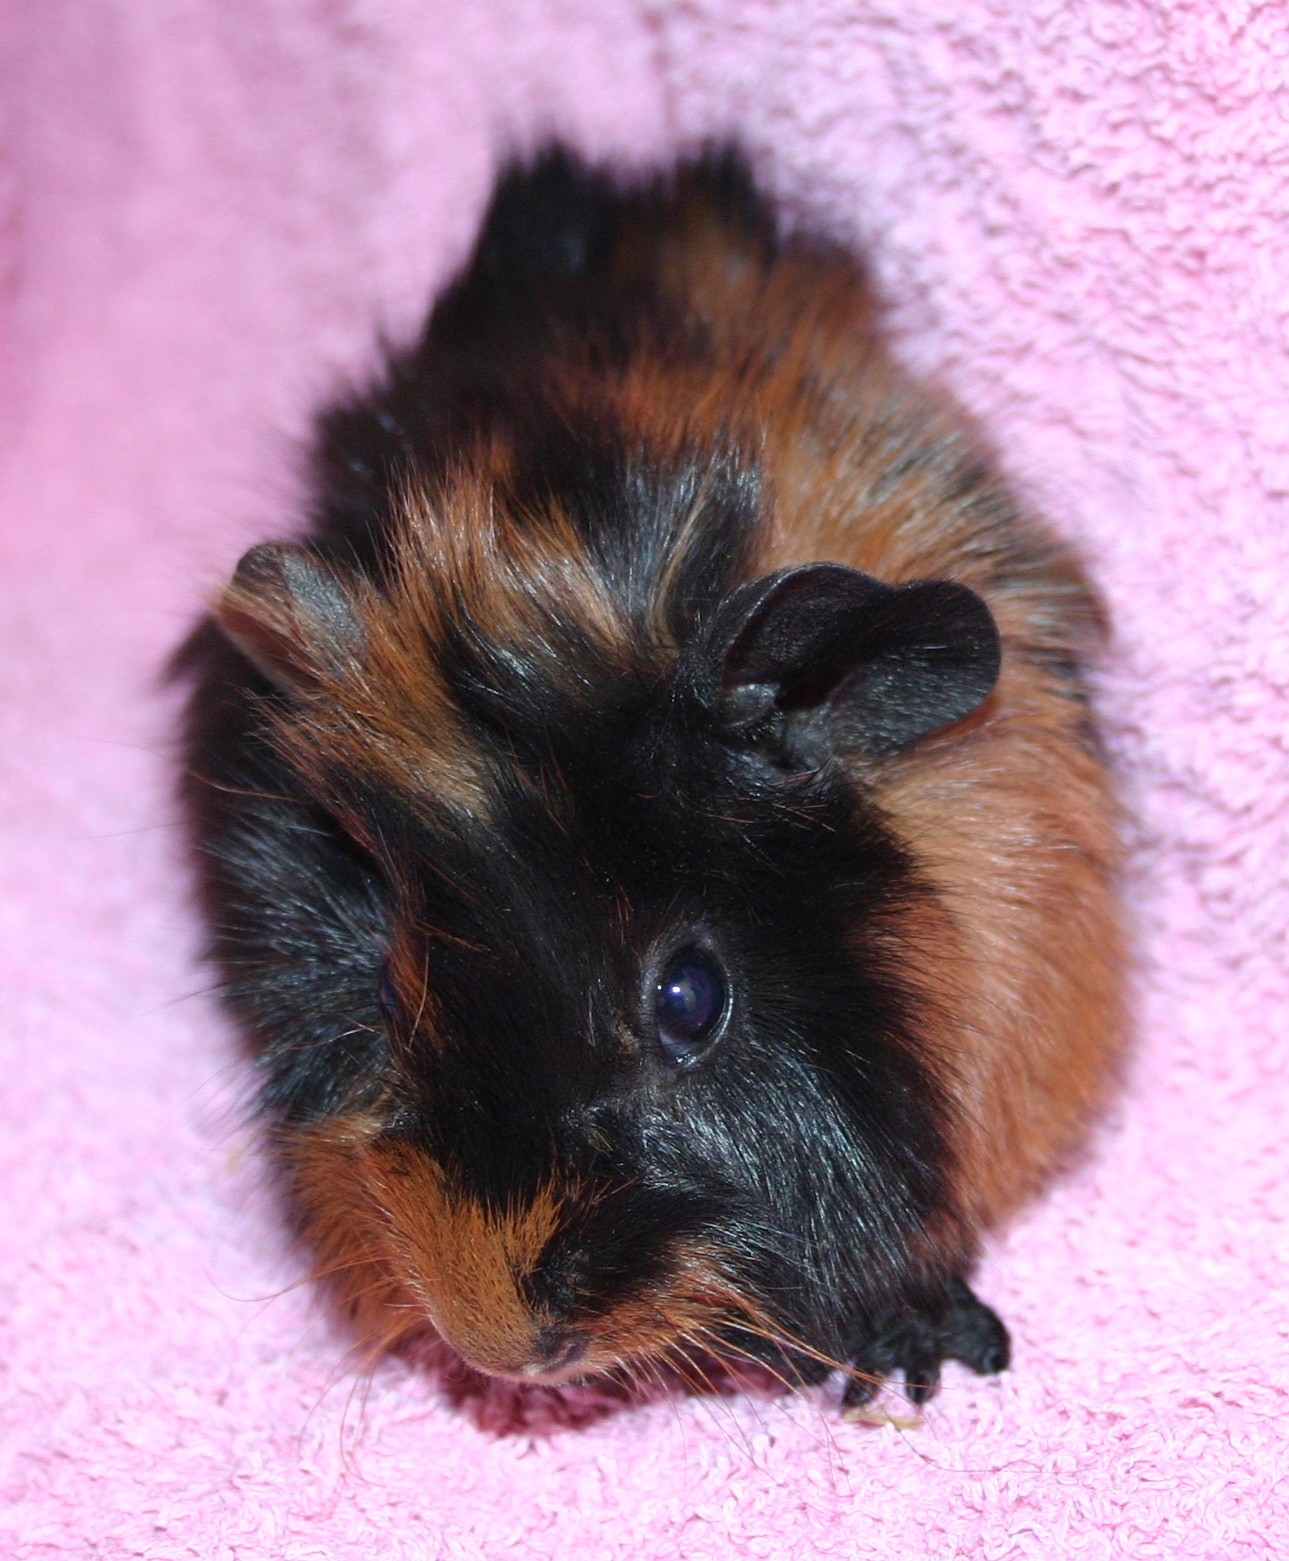 W Midlands cute baby guinea pigs - Reptile Forums